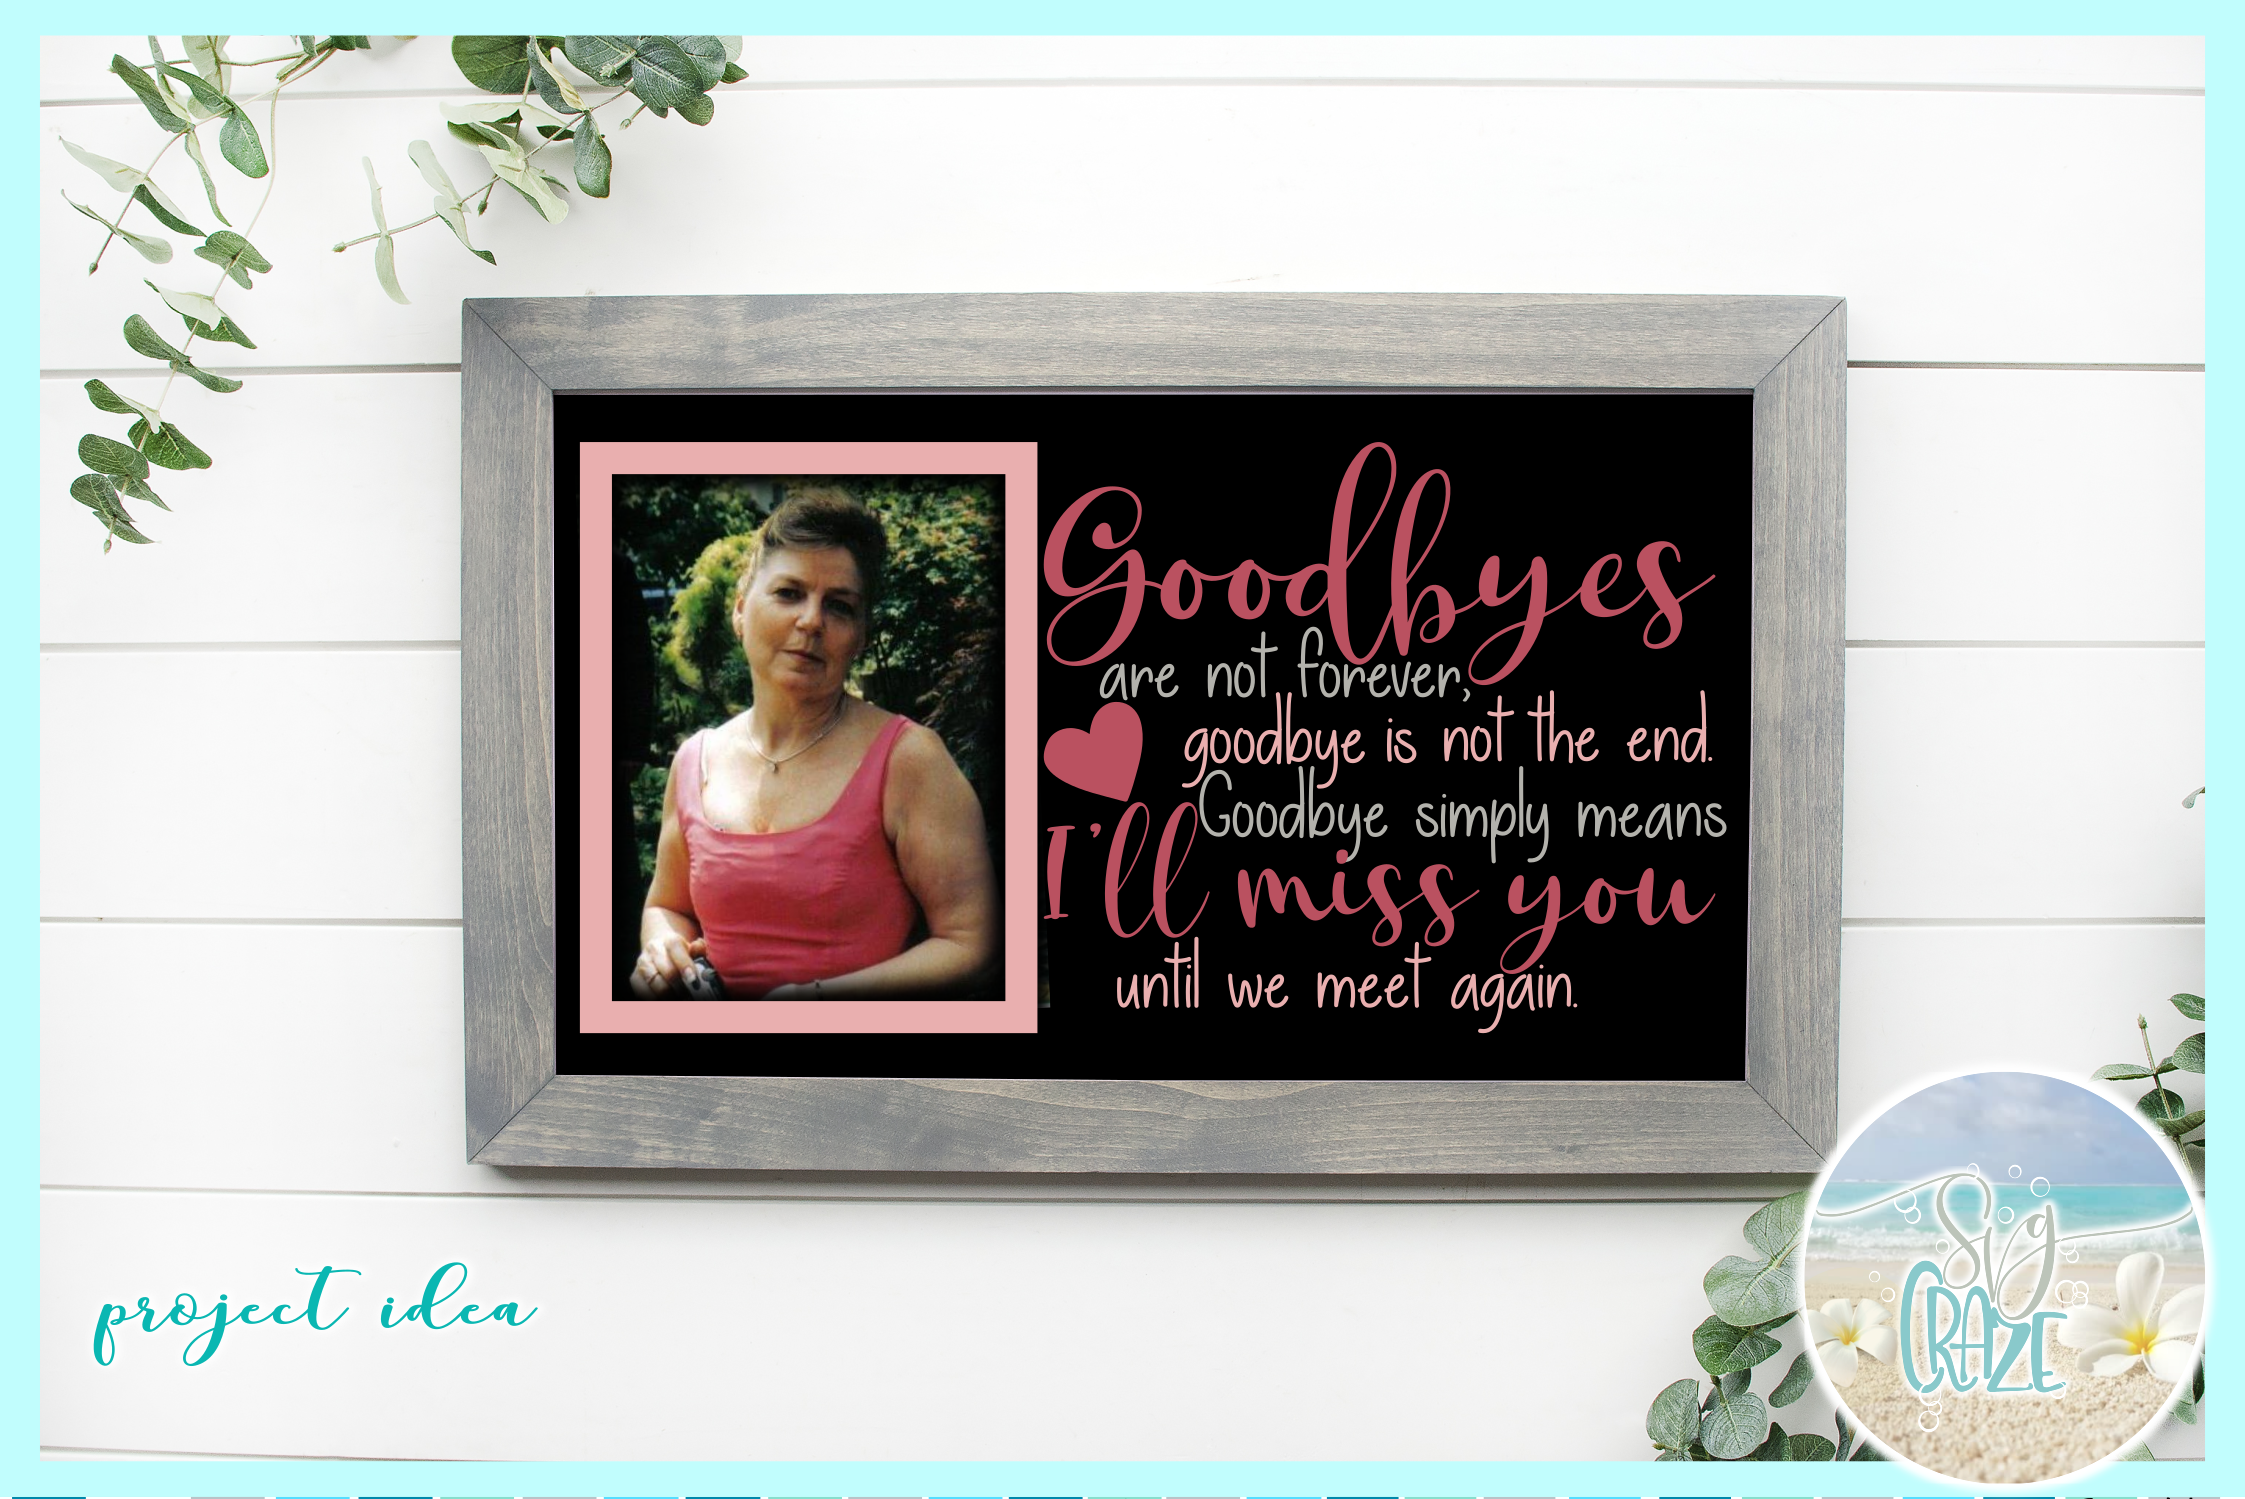 Goodbyes Are Not Forever I'll Miss You Until We Meet Again example image 2